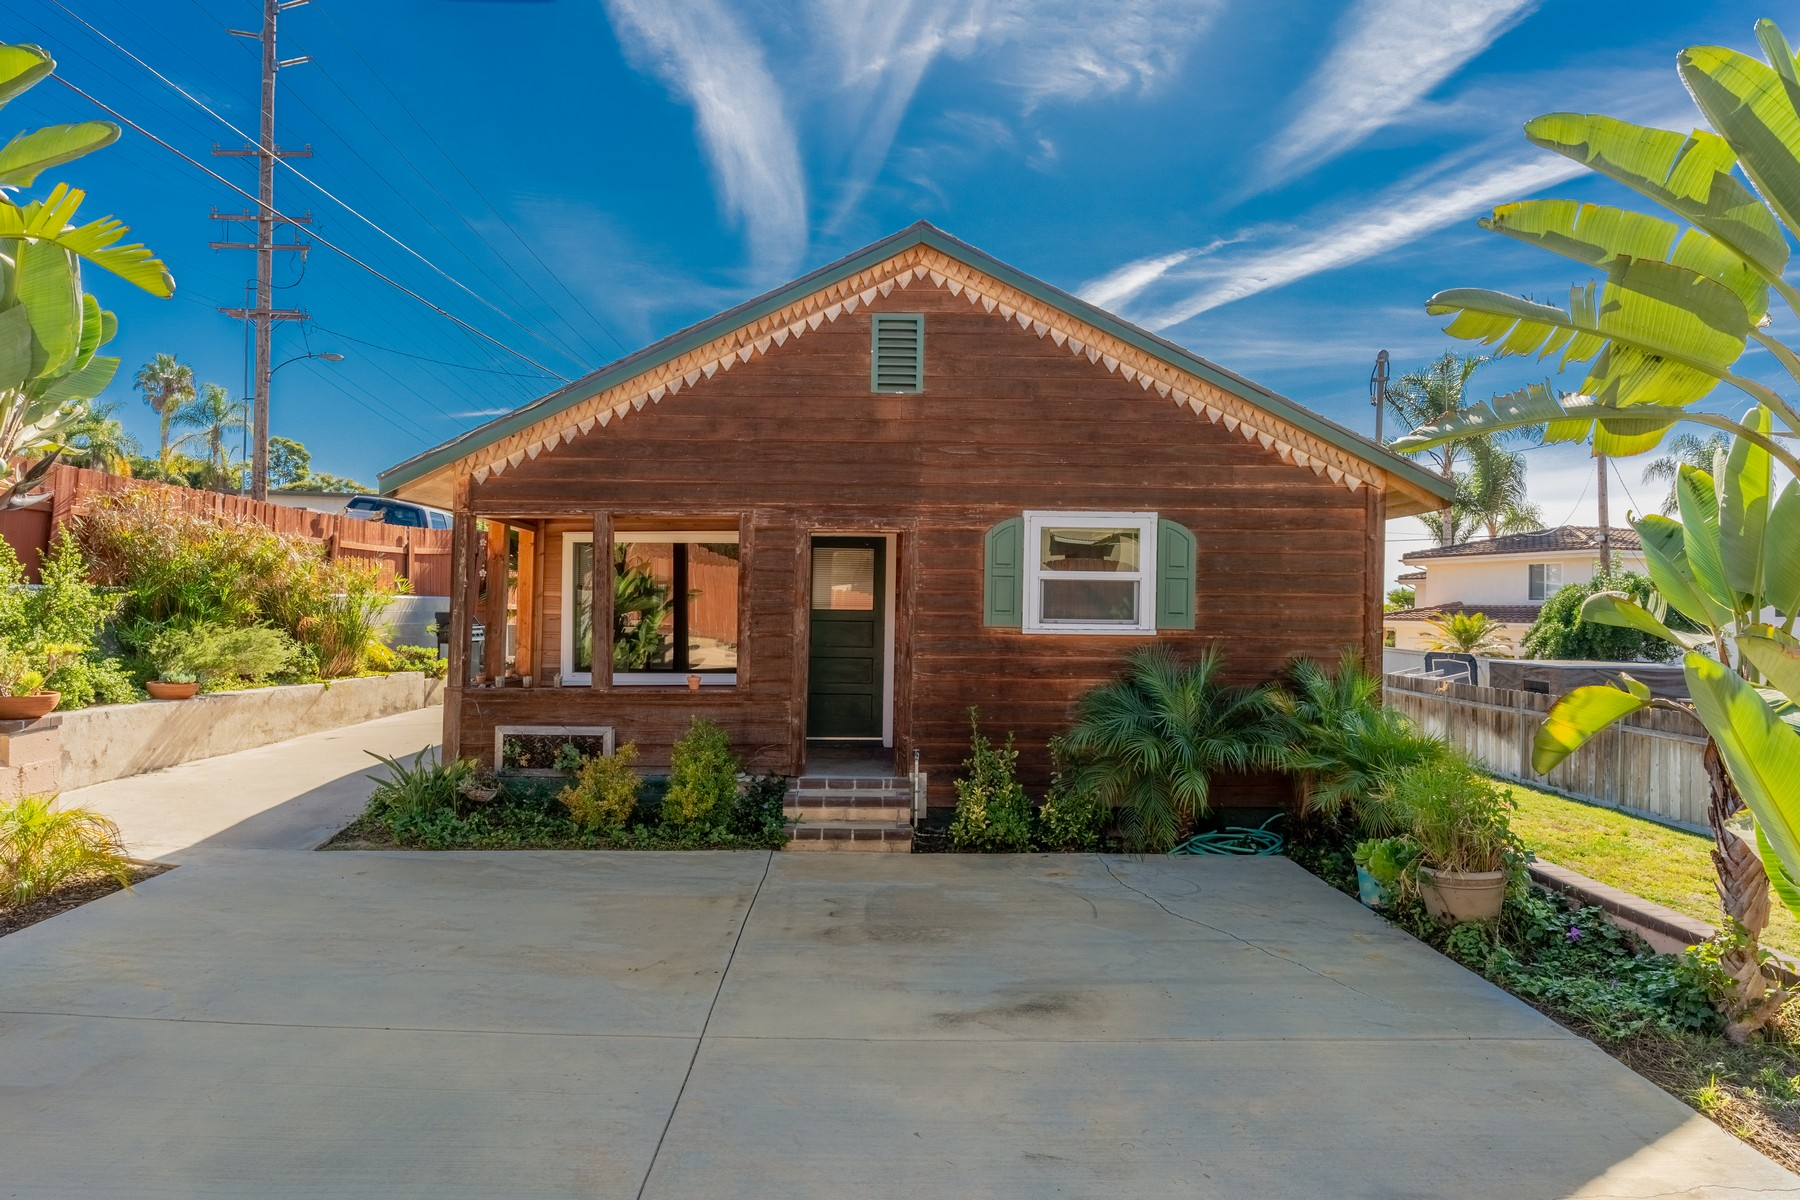 Single Family Home for Active at 742 Ida Ave. 742 Ida Ave. Solana Beach, California 92075 United States